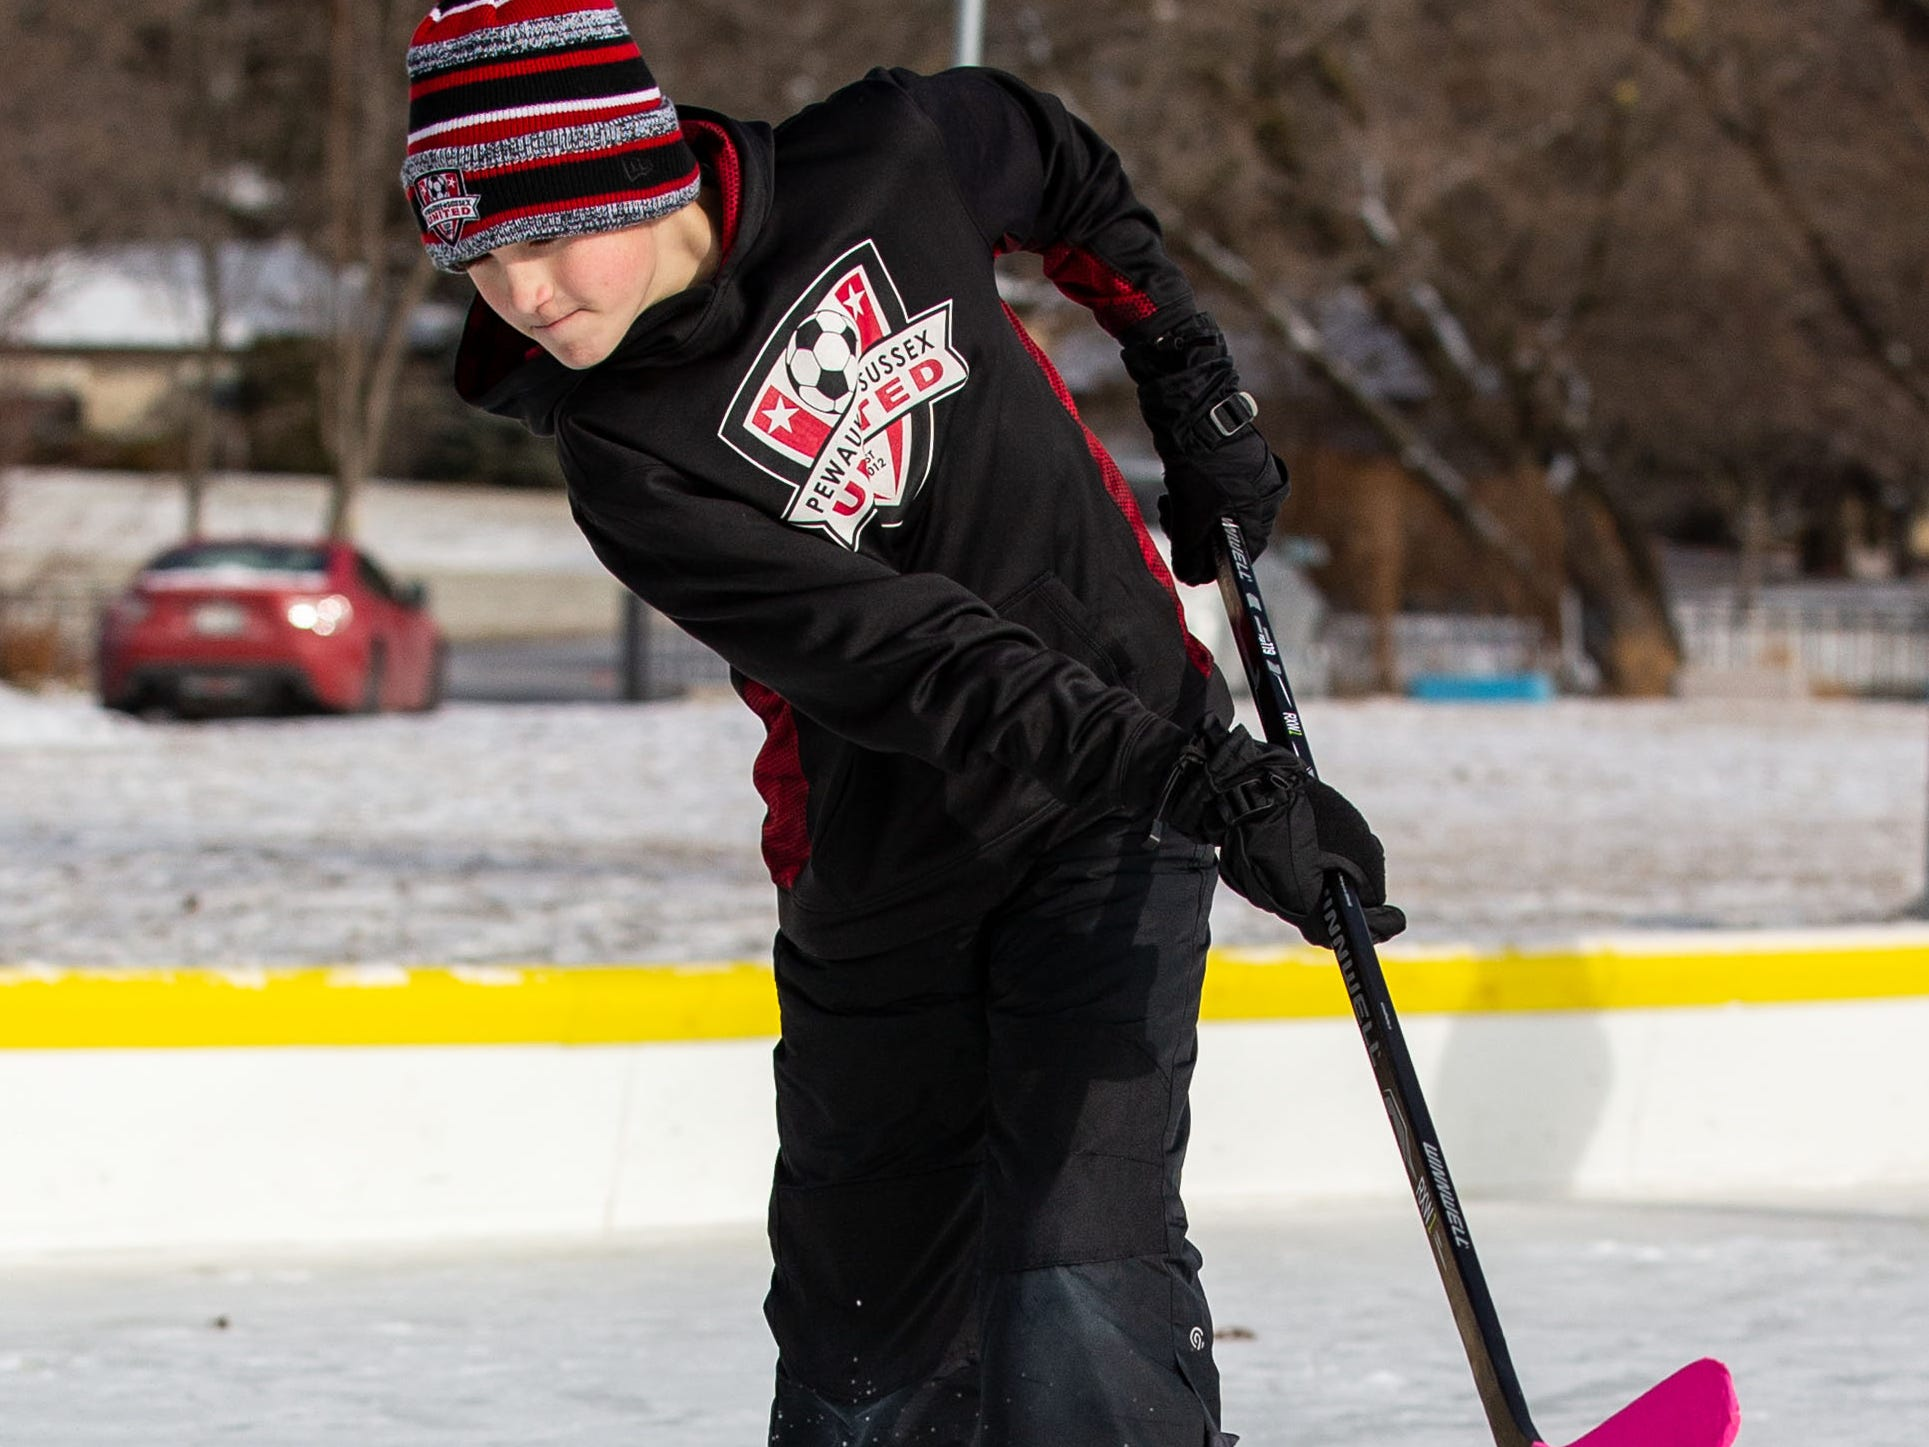 Sam Kulibert, 10, of Sussex works on his hockey technique at the Sussex Civic Center ice rink on Sunday, Dec. 30, 2018. The rink is open seven days a week as weather permits. For hours and info visit villagesussex.org.